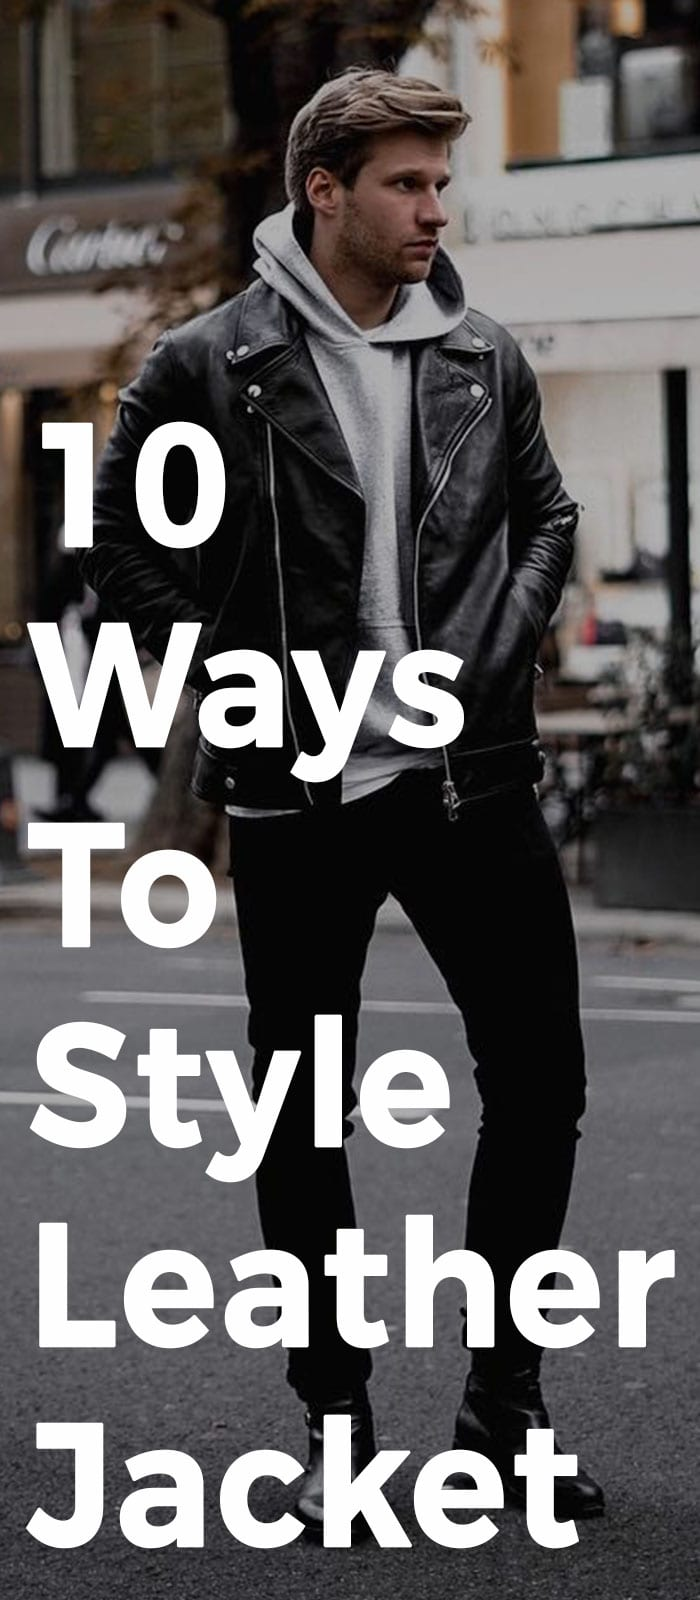 10 Ways To Style Leather Jacket!